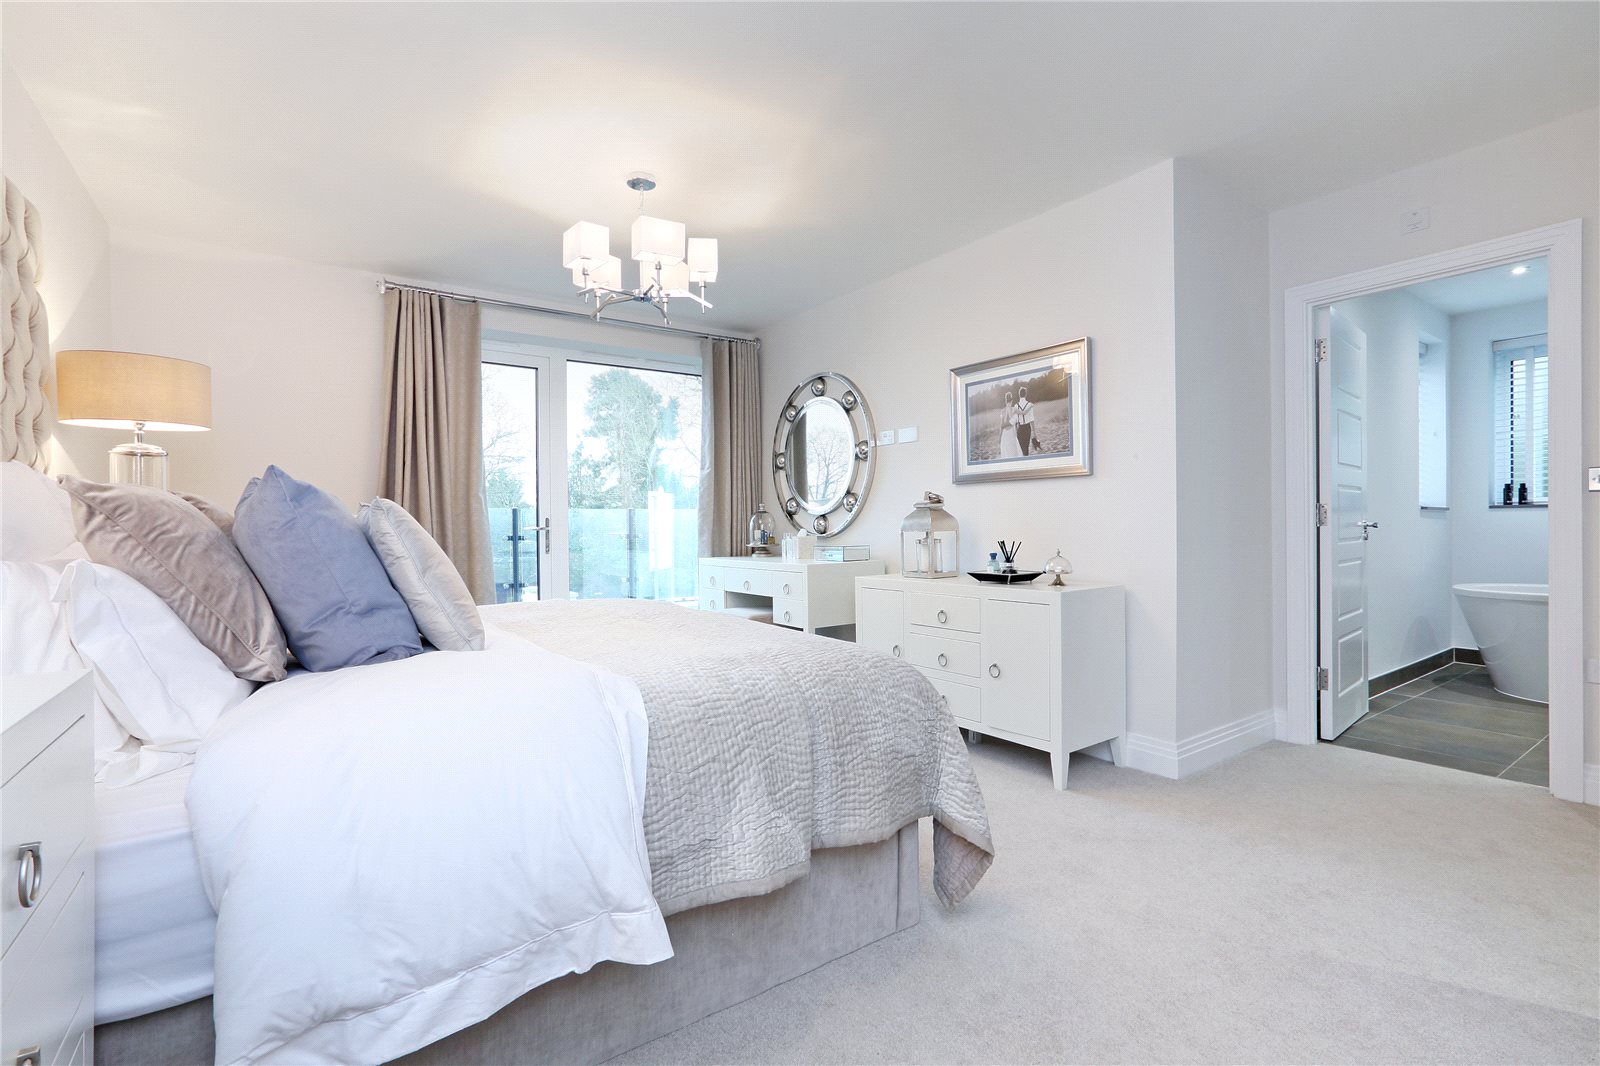 Additional photo for property listing at South Park Crescent, Gerrards Cross, Buckinghamshire, SL9 Gerrards Cross, Angleterre